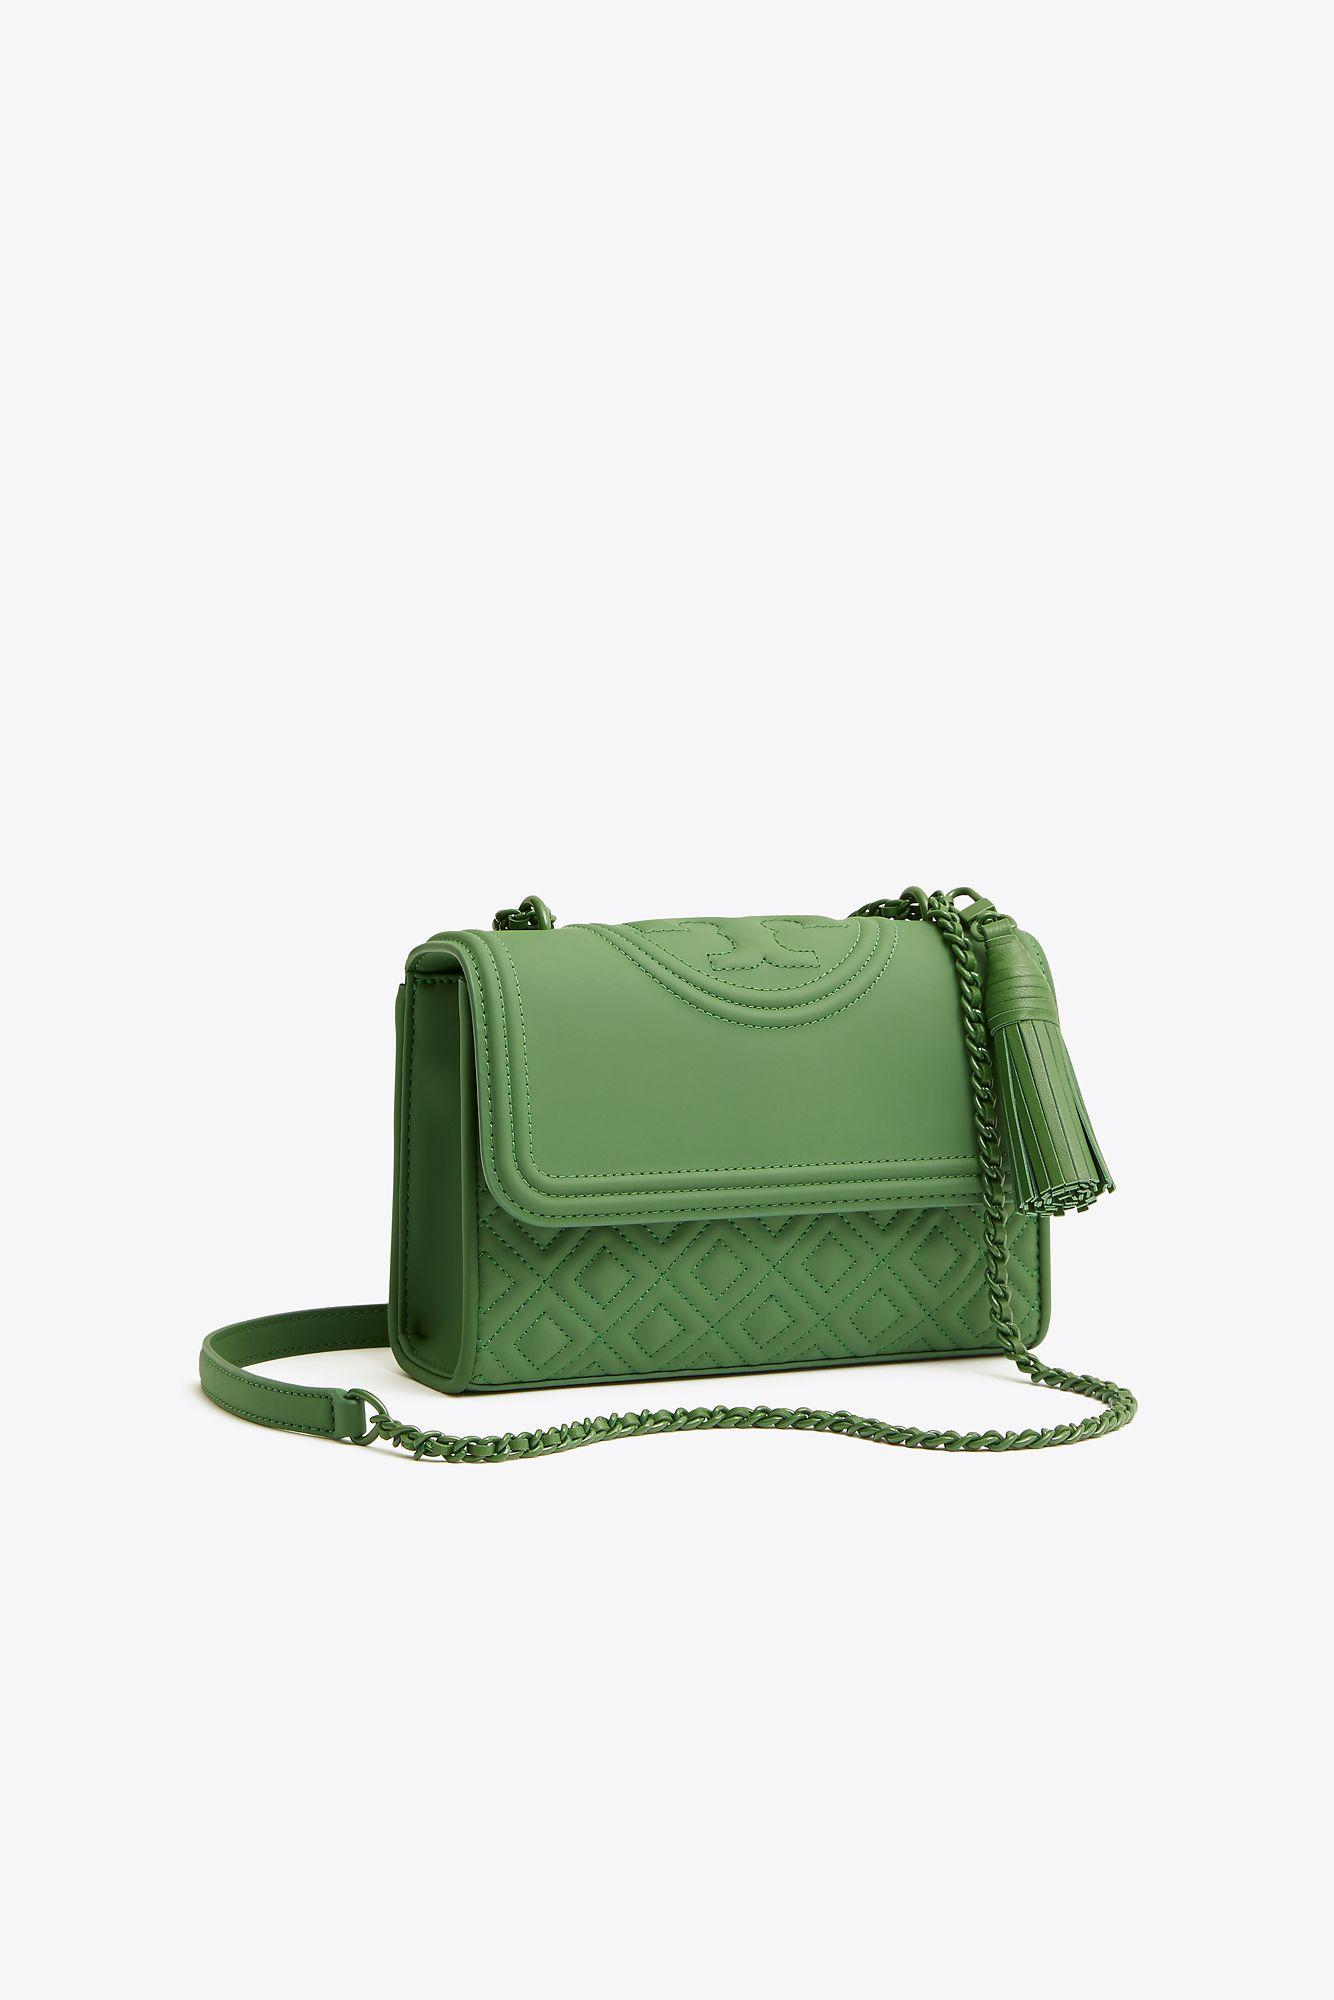 76503be442b7 Tory Burch. Women s Green Fleming Matte Small Convertible Shoulder Bag